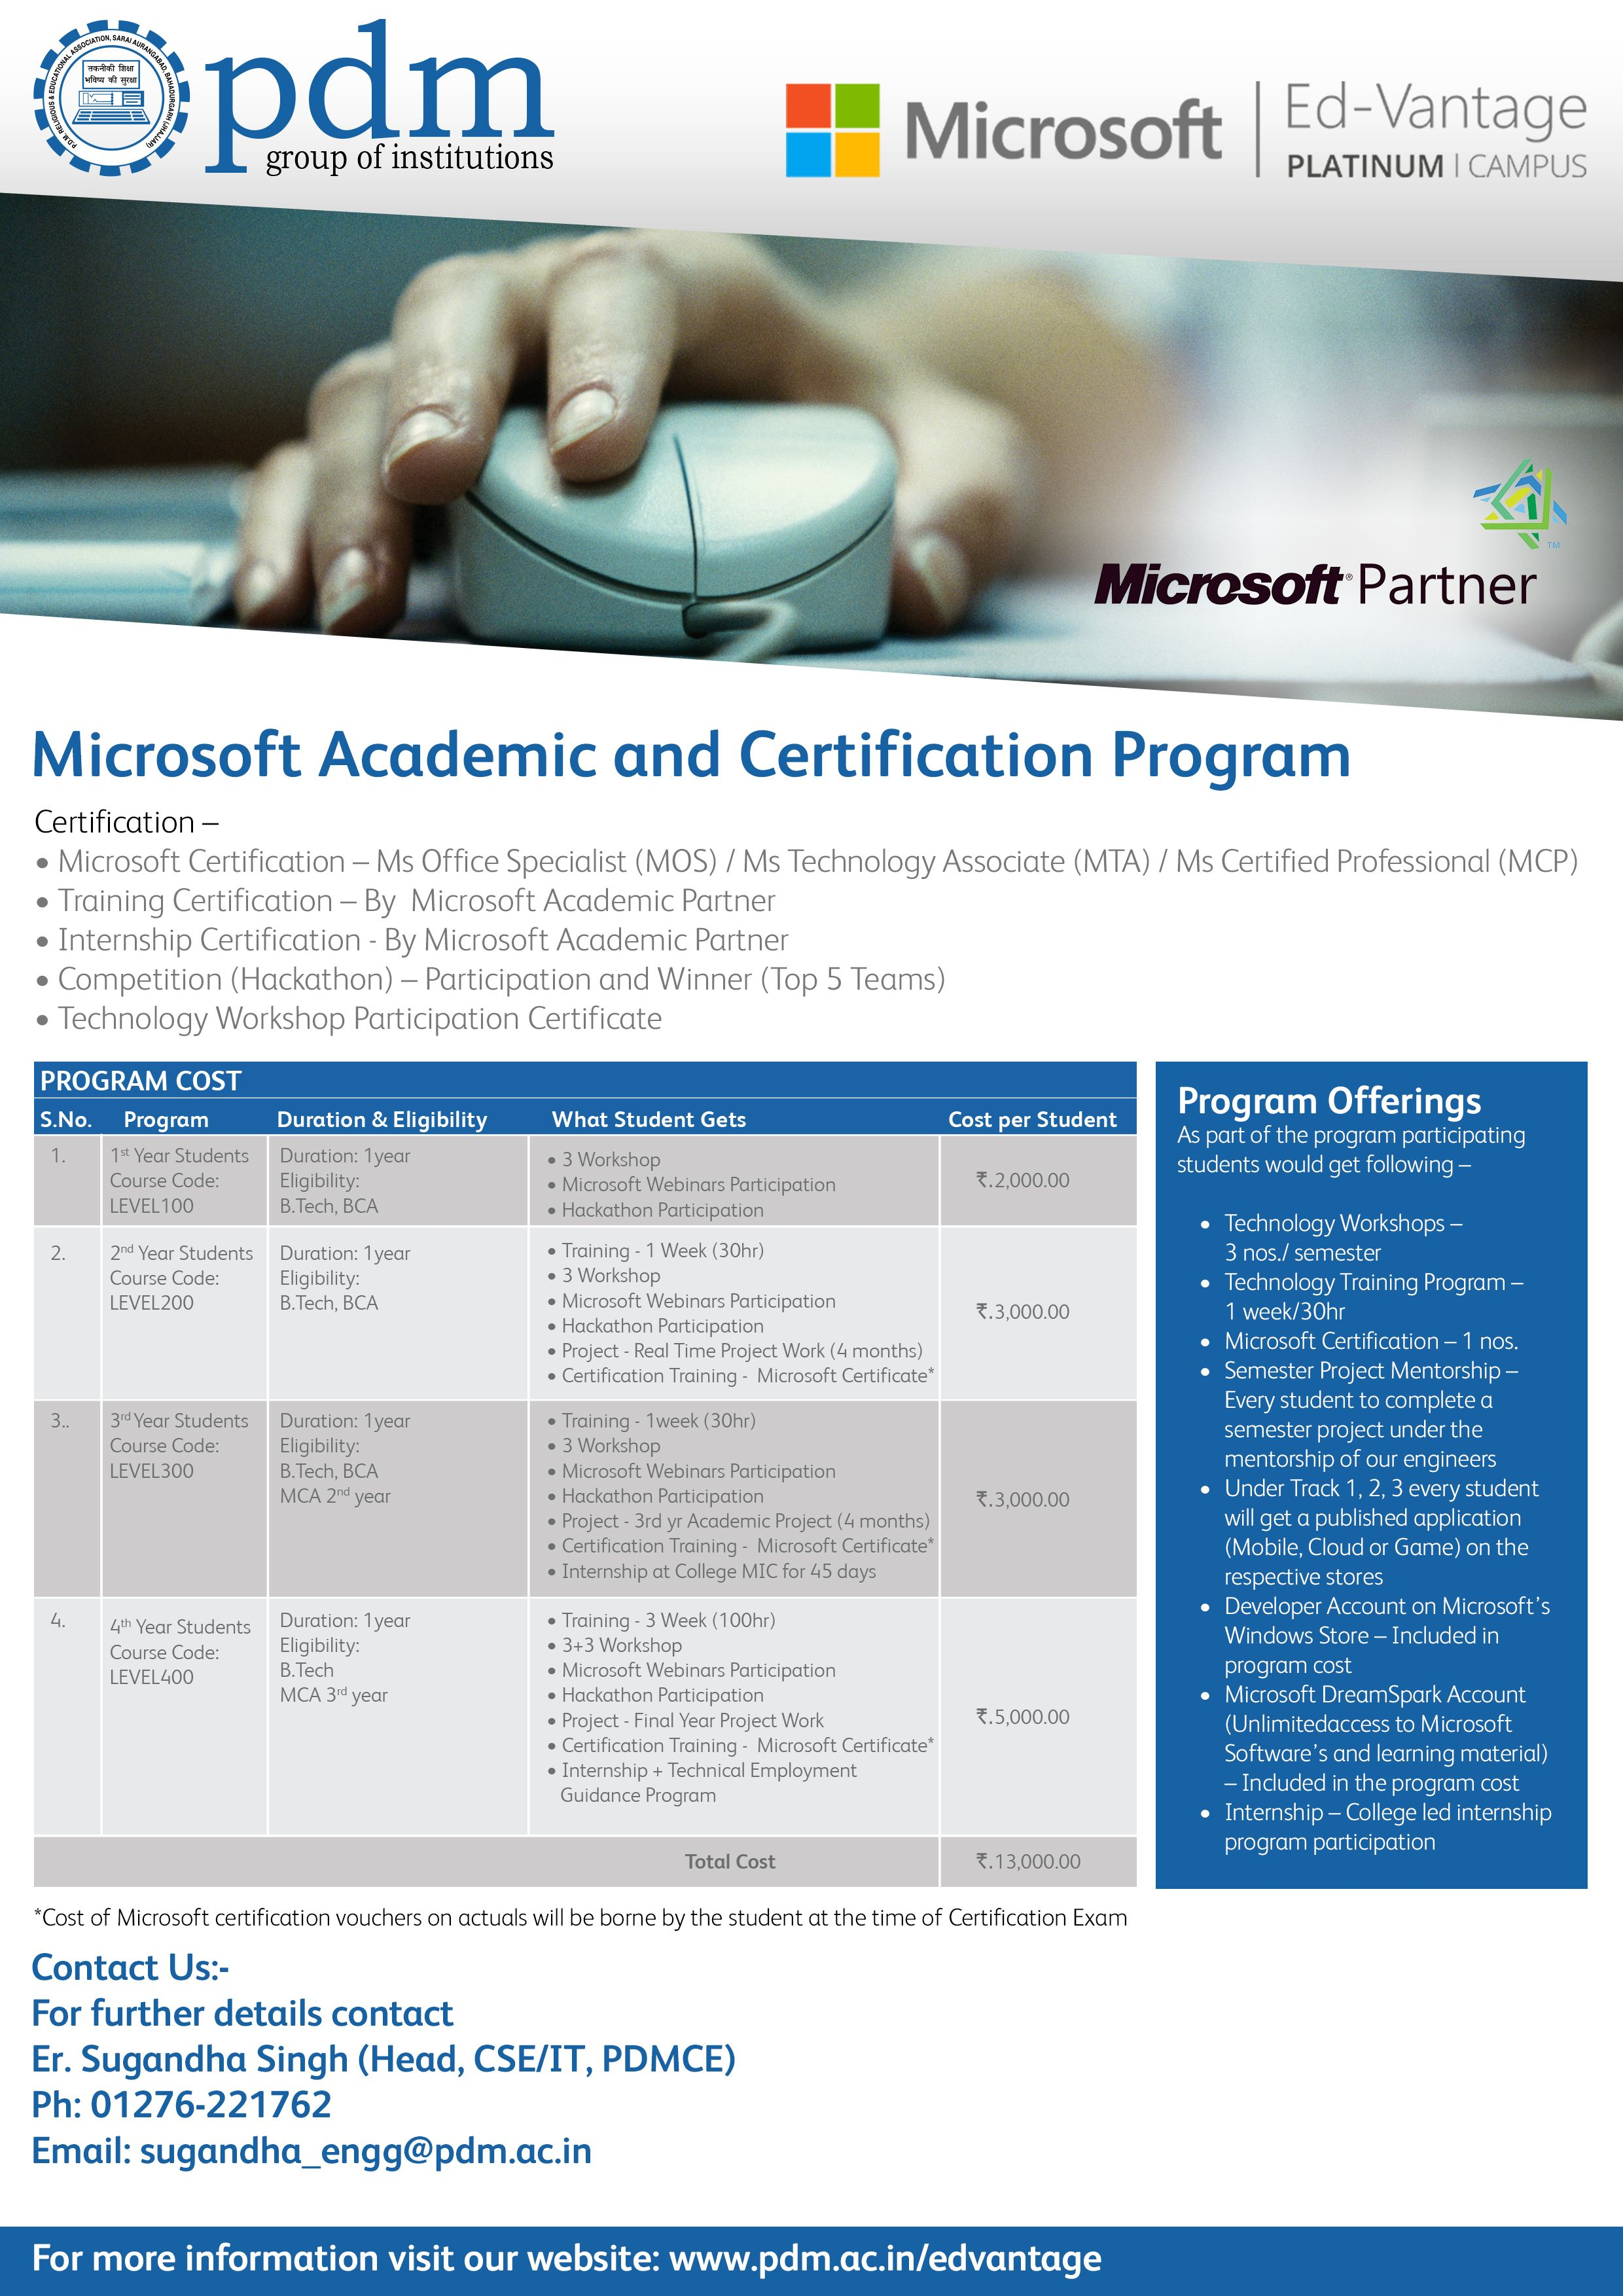 Certiport crowns microsoft office specialist project scheduler fresh stock of mos certification business cards and resume 59ce3f7d9c6a9286a770227a96f8a53c mos certification certiport crowns microsoft office specialist 1betcityfo Gallery